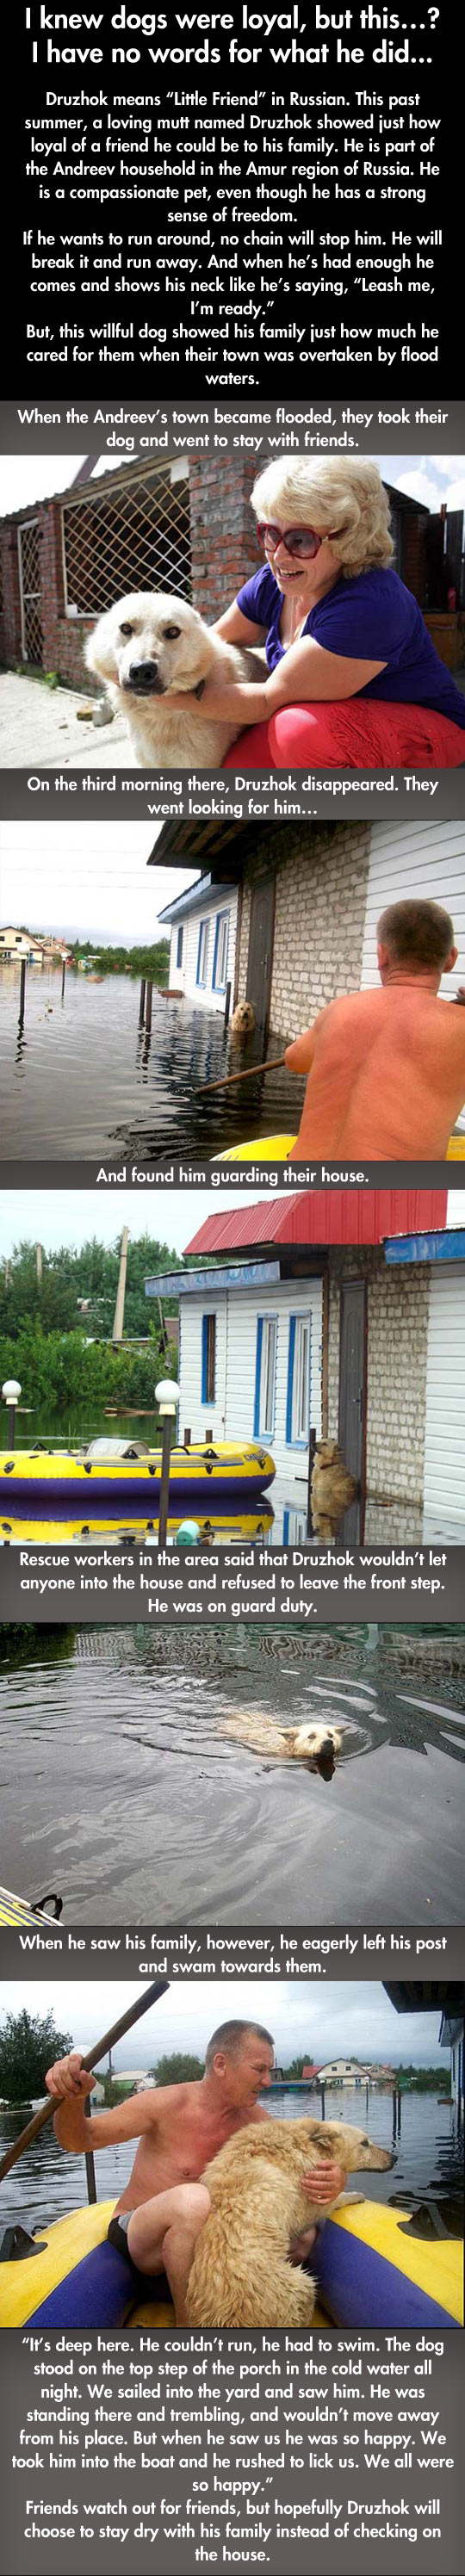 funny-dog-flood-Russia-pet-waters